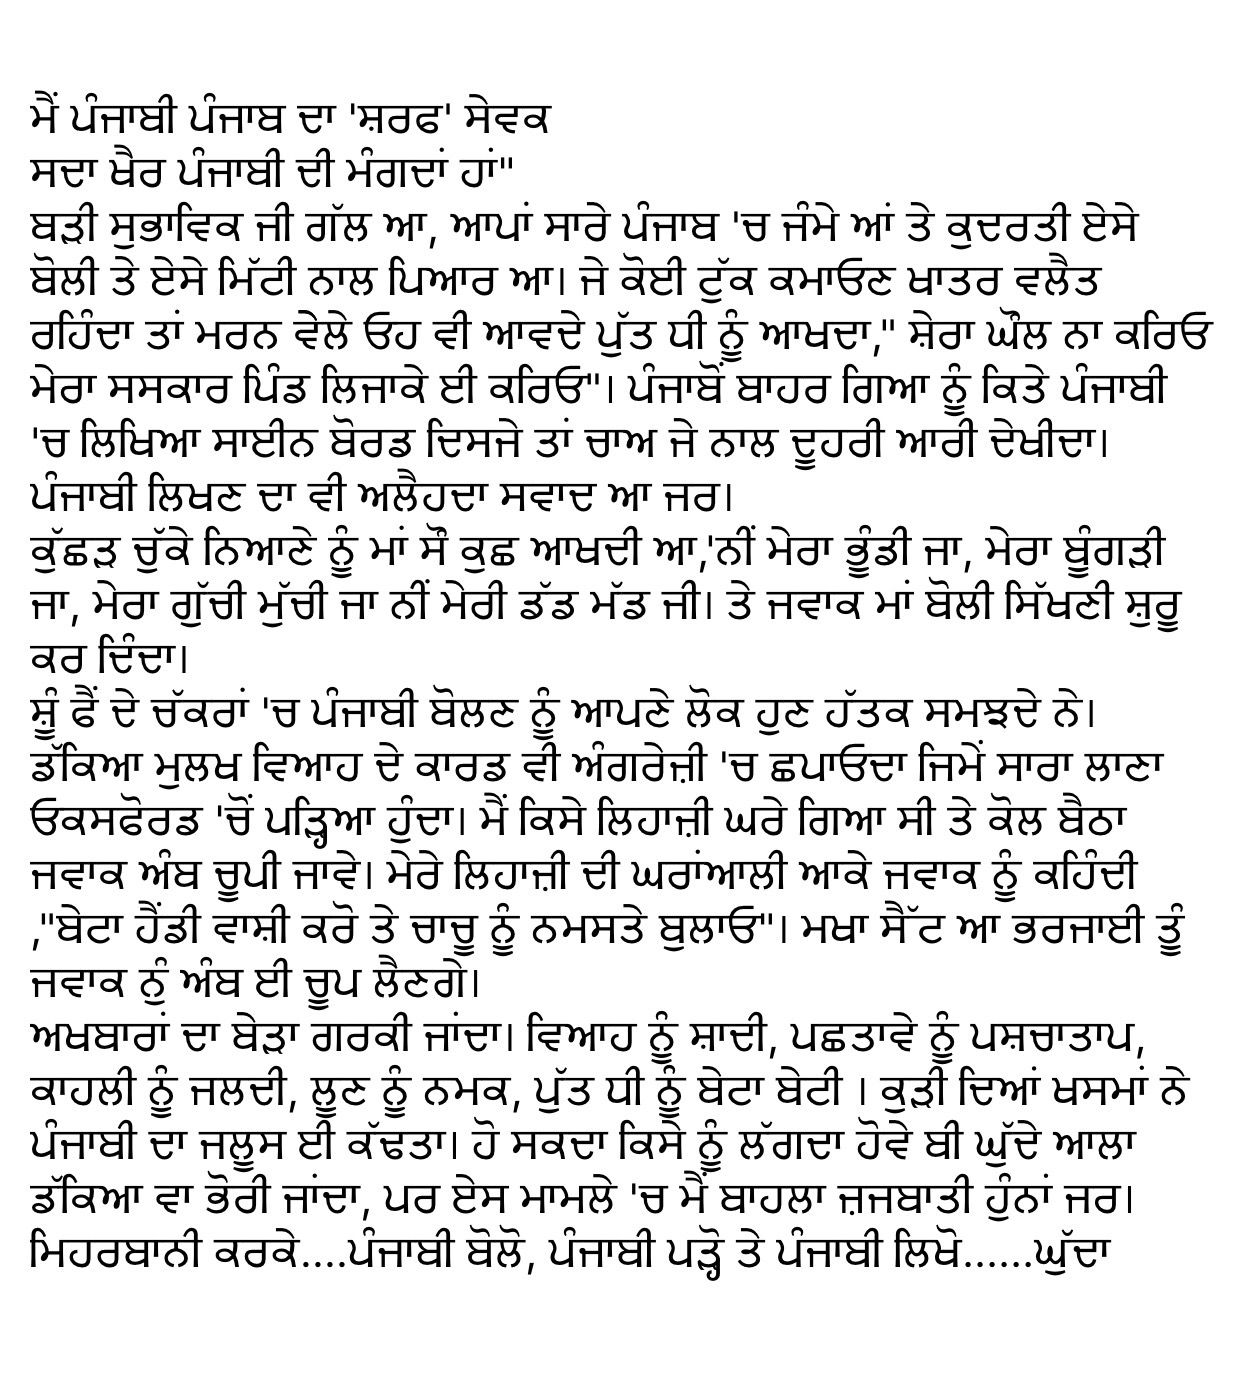 dowry system essay in punjabi Dowry system essay in punjabi best book for writing college essays jumpables essay on respecting elders in hindi serial essay on importance of yoga in daily life in.